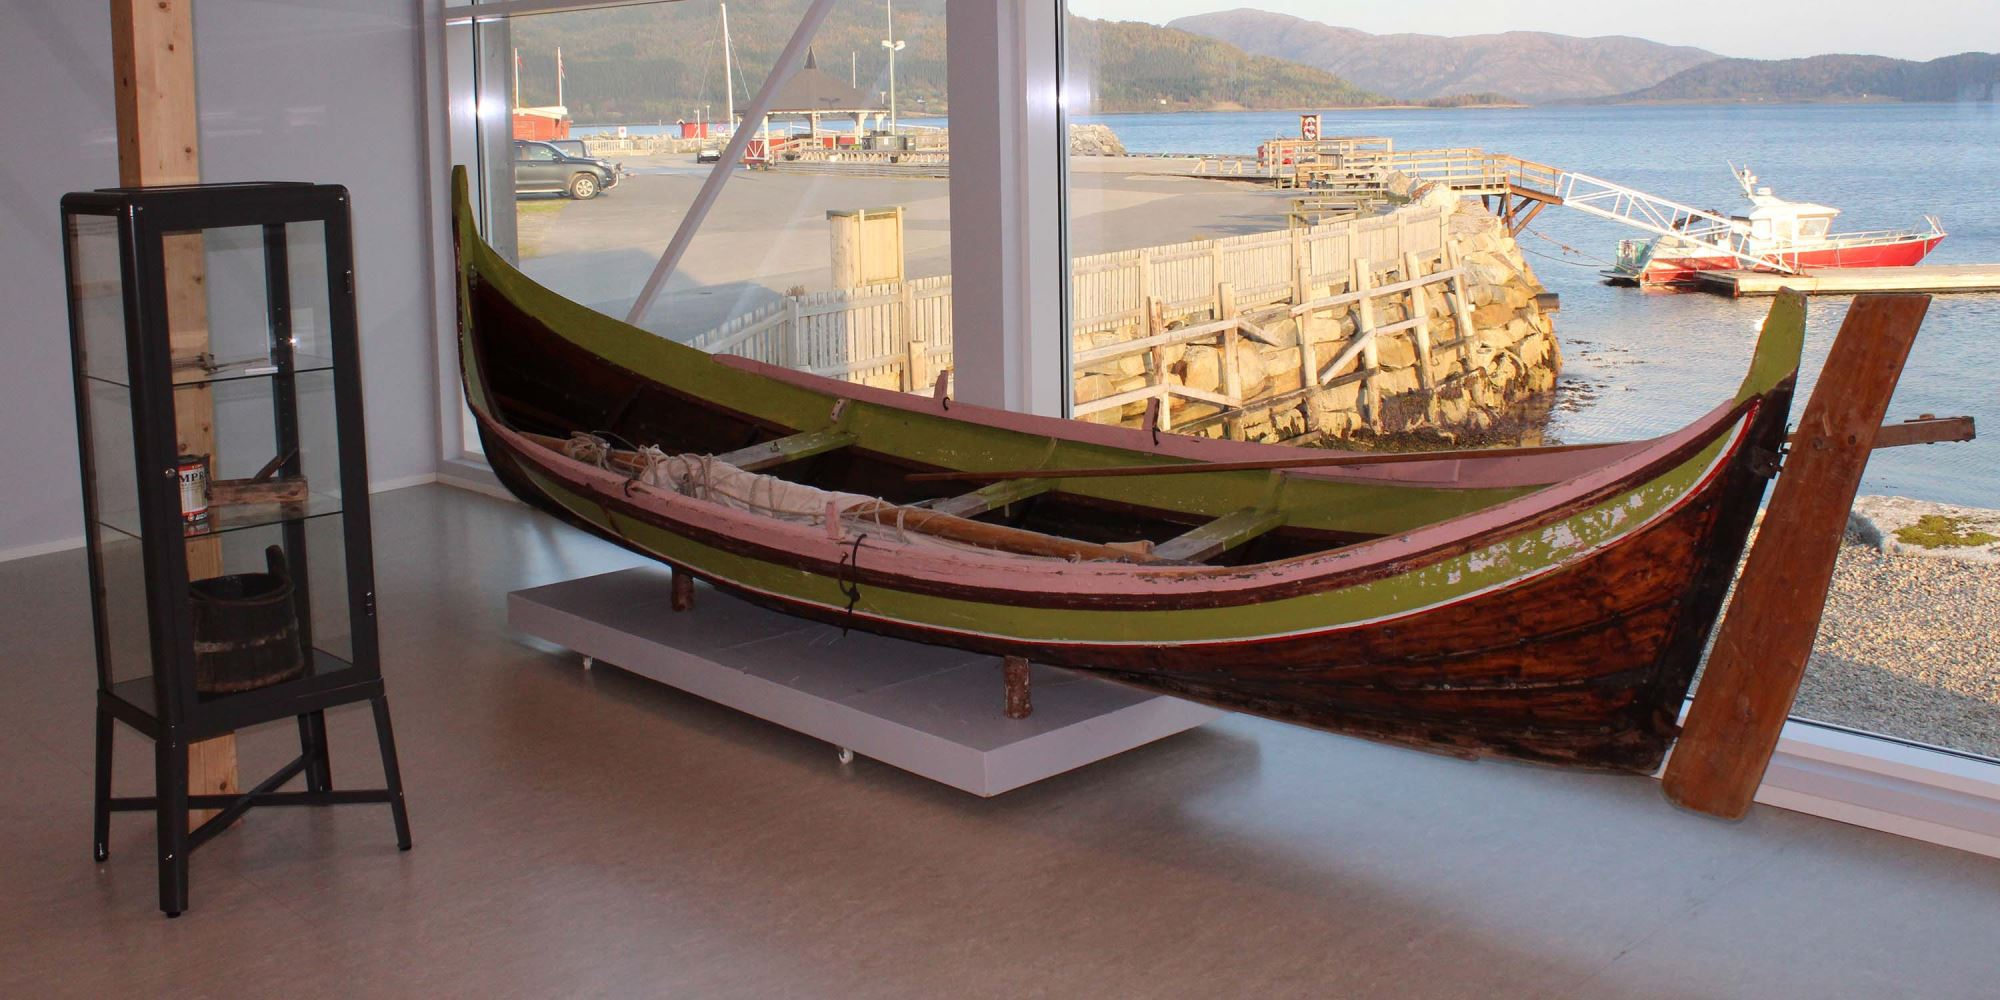 Bindalsfæring - traditional boat from Bindal